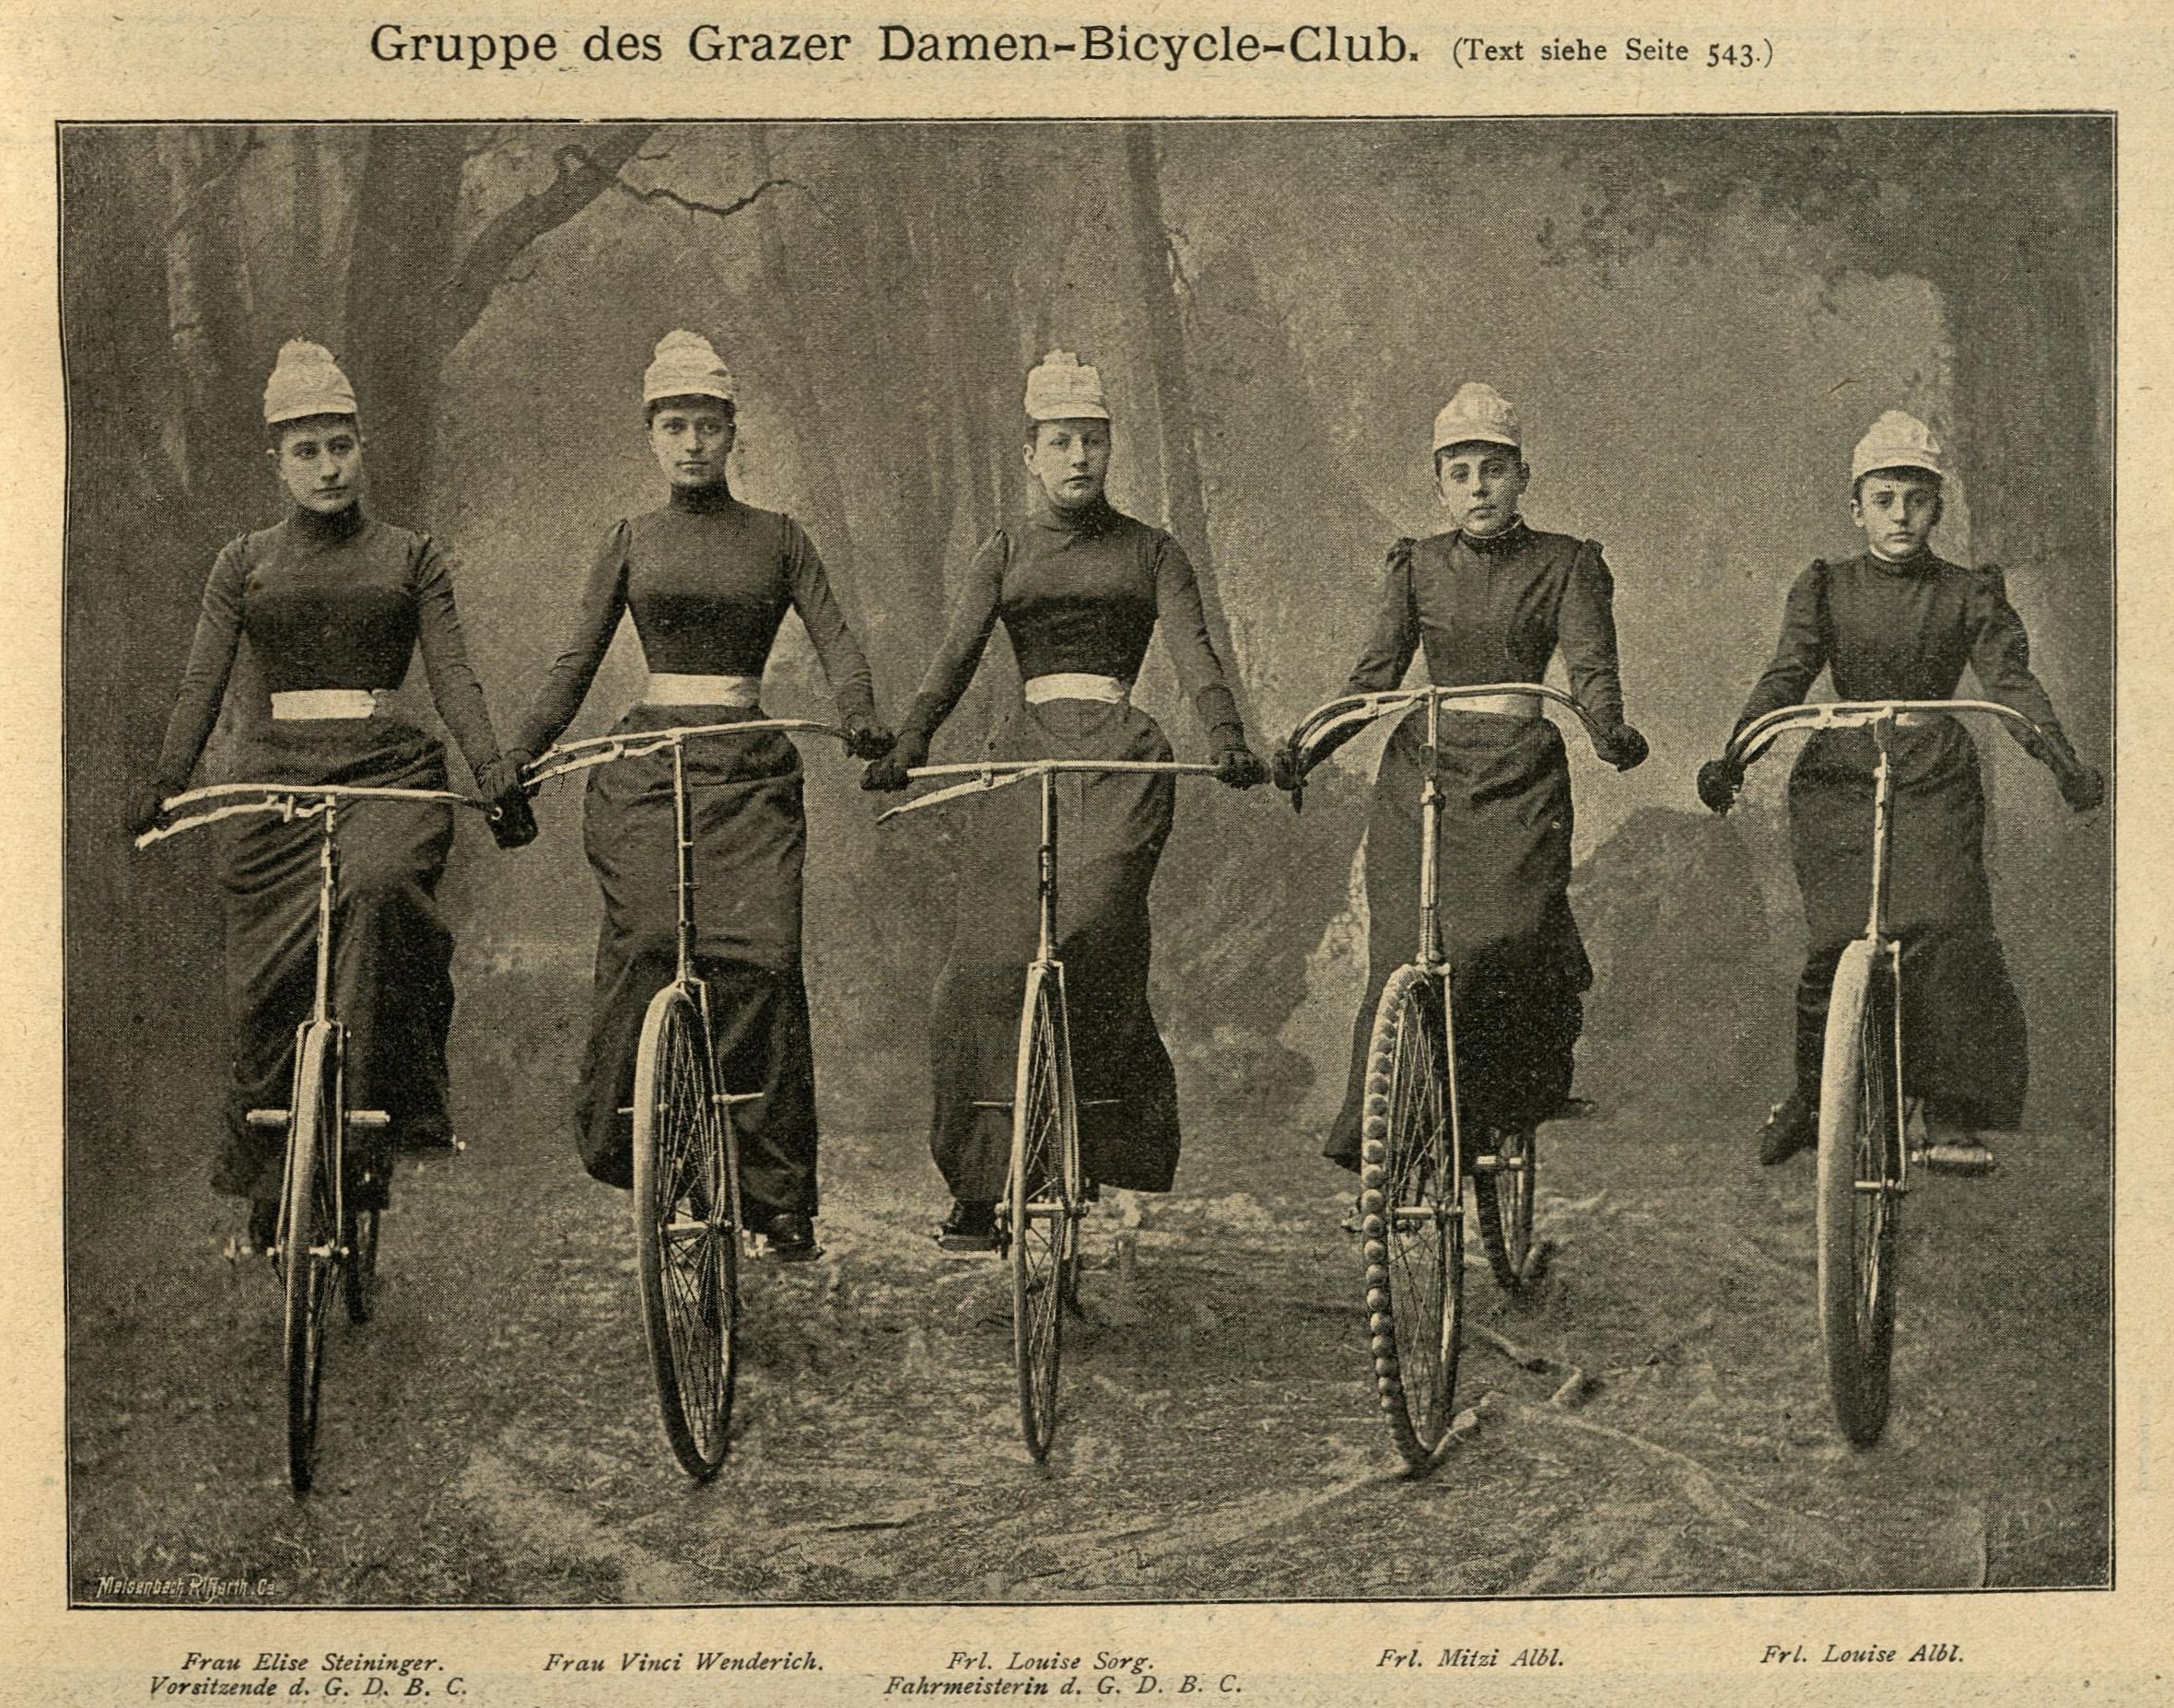 Gruppe des Grazer Damen-Bicycle-Clubs